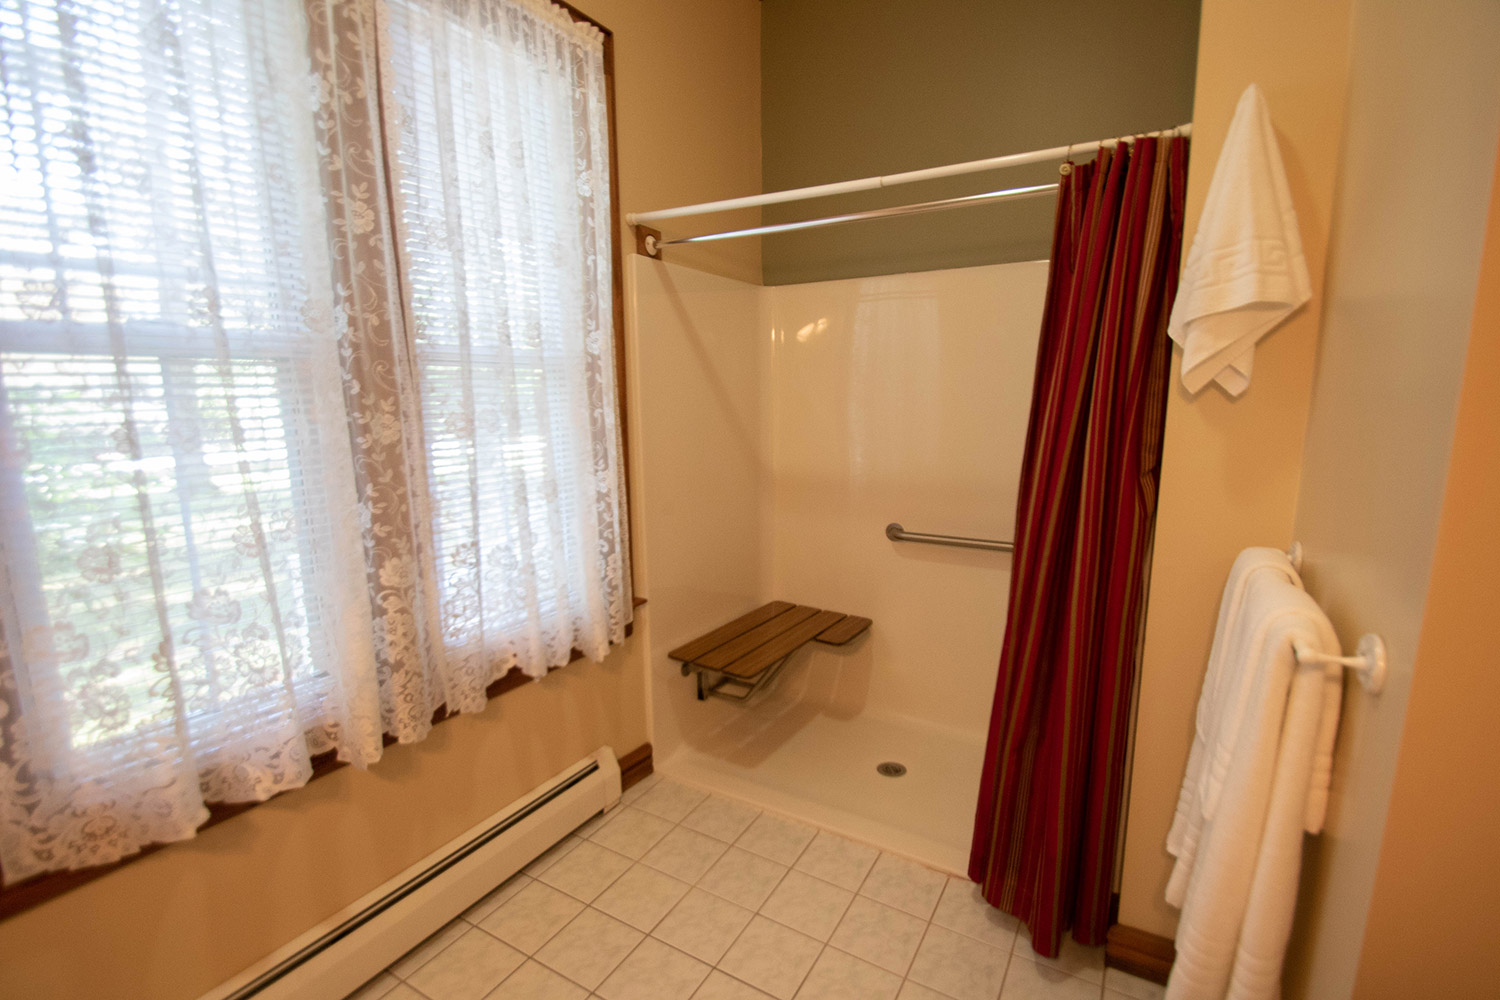 Bathroom with shower with bench